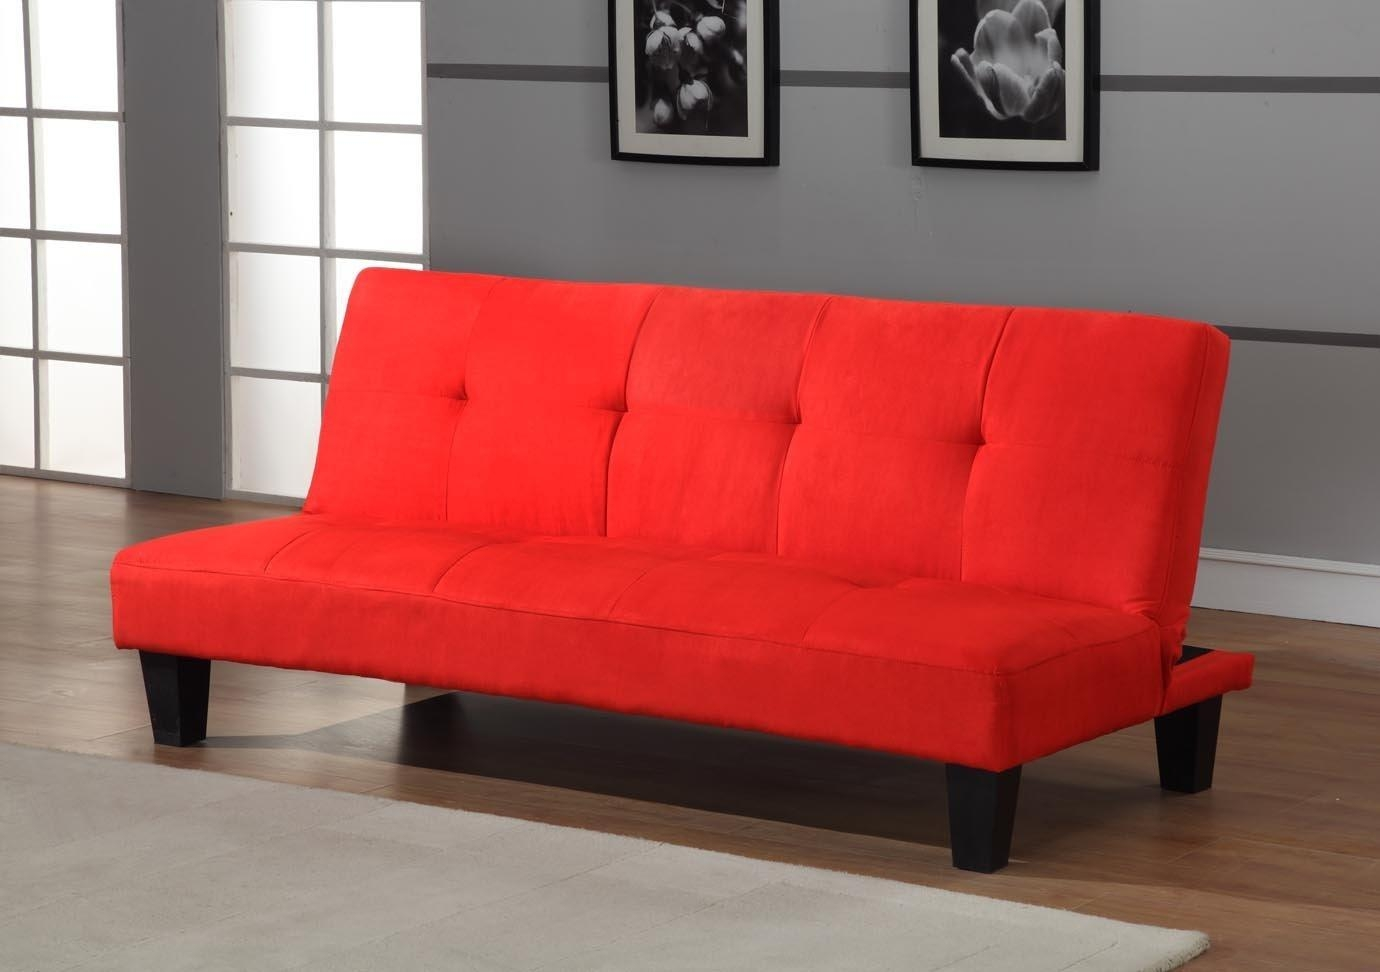 Furniture: Fancy Kebo Futon Sofa Bed For Living Room Furniture Intended For Small Black Futon Sofa Beds (Image 4 of 20)